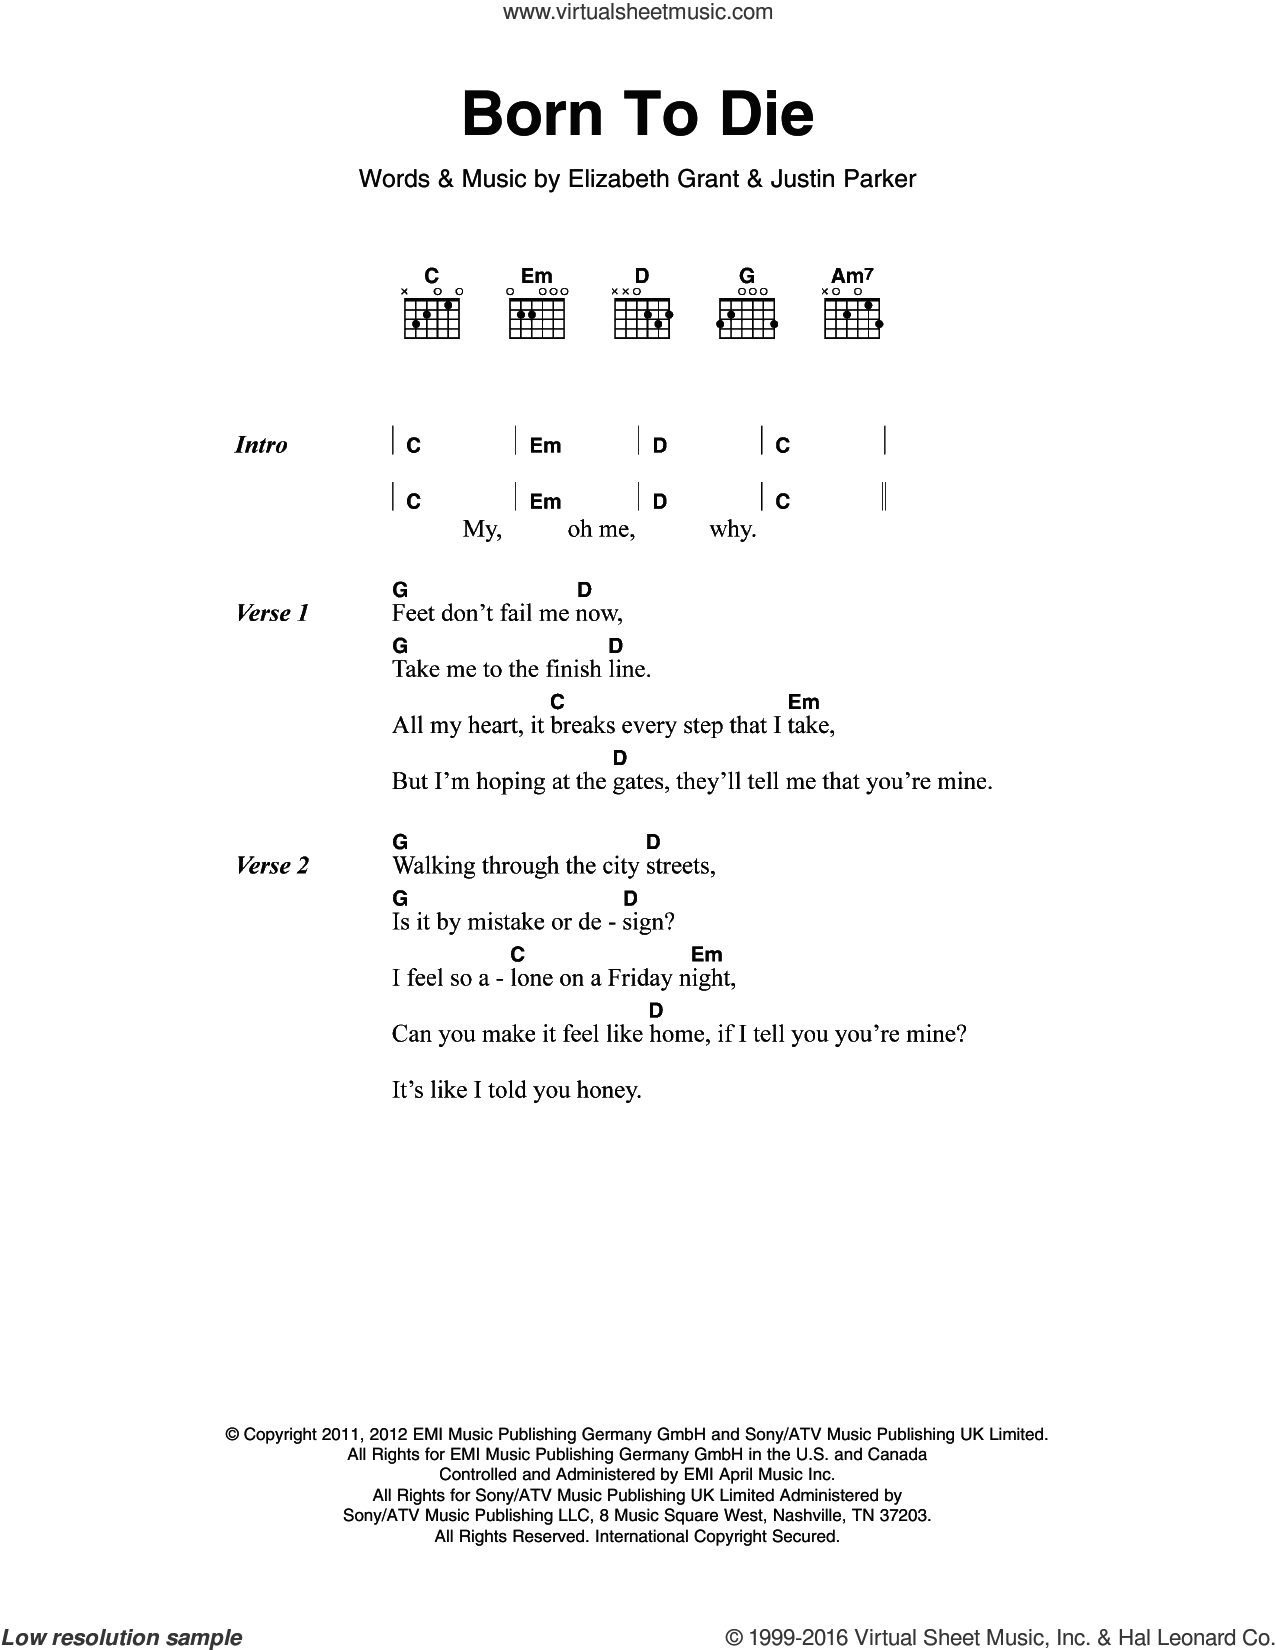 Born To Die sheet music for guitar (chords) by Justin Parker, Lana Del Rey and Elizabeth Grant. Score Image Preview.